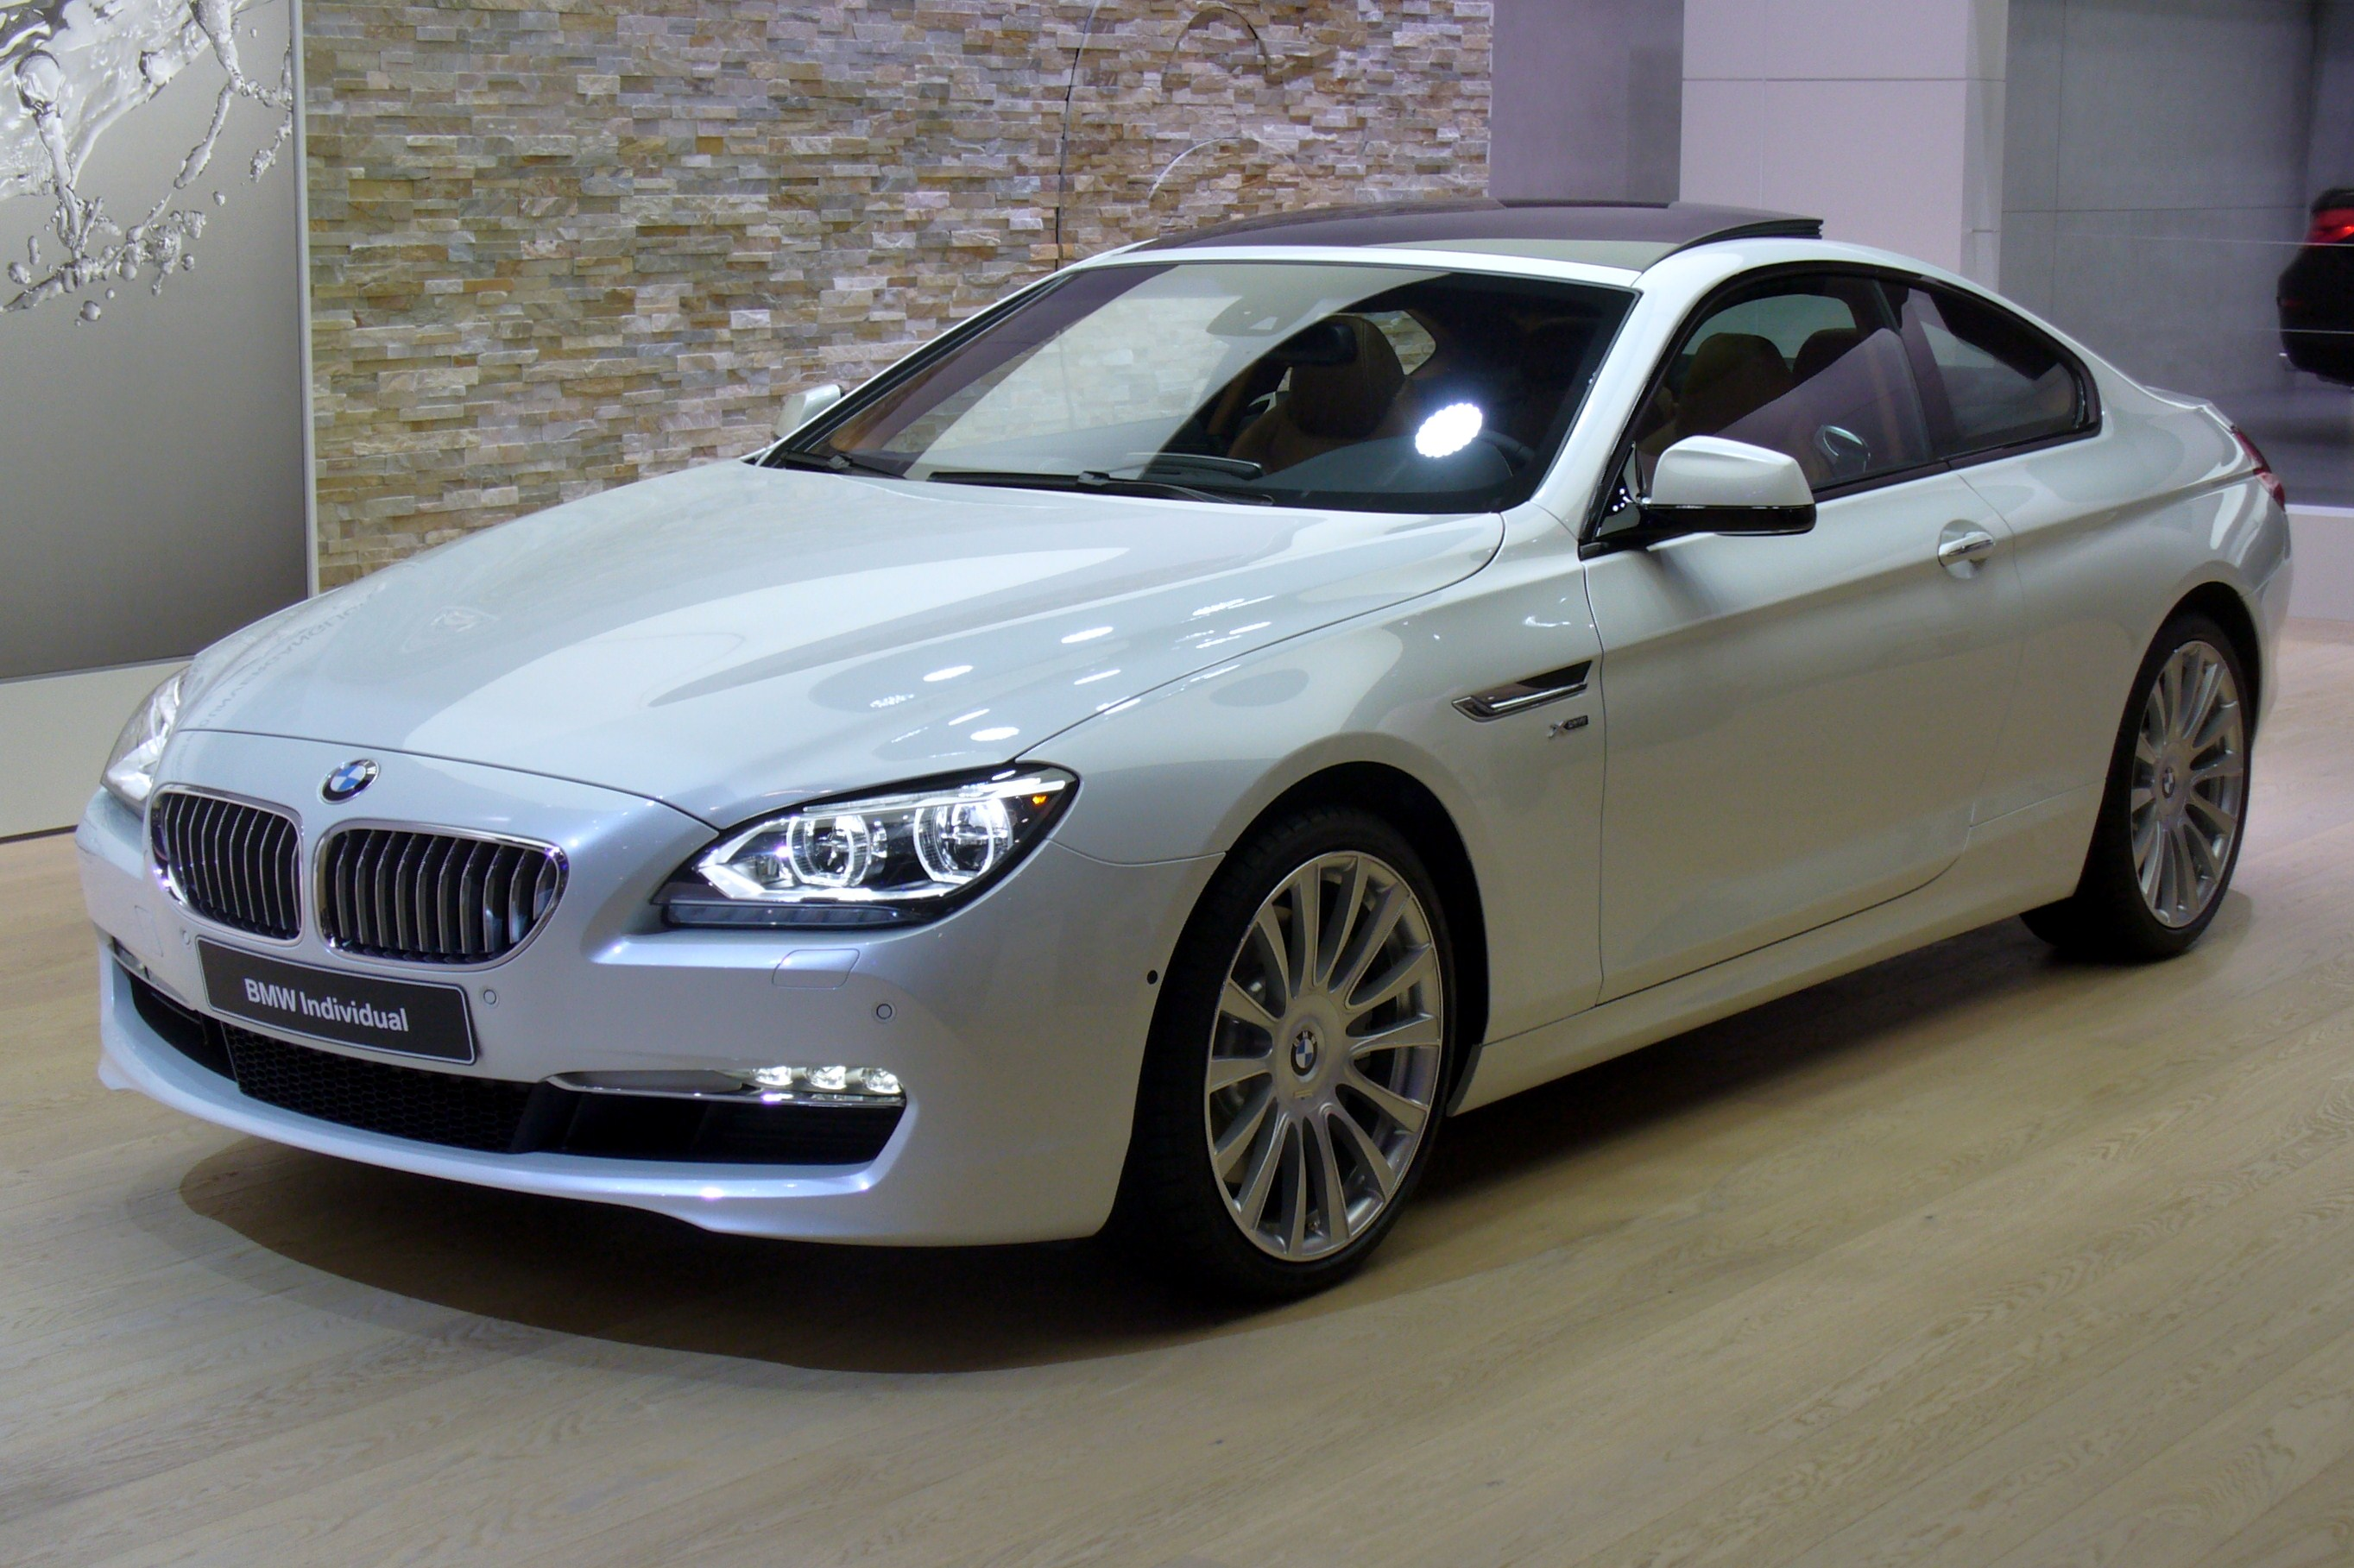 Bmw 645ci 2014 Review Amazing Pictures And Images Look